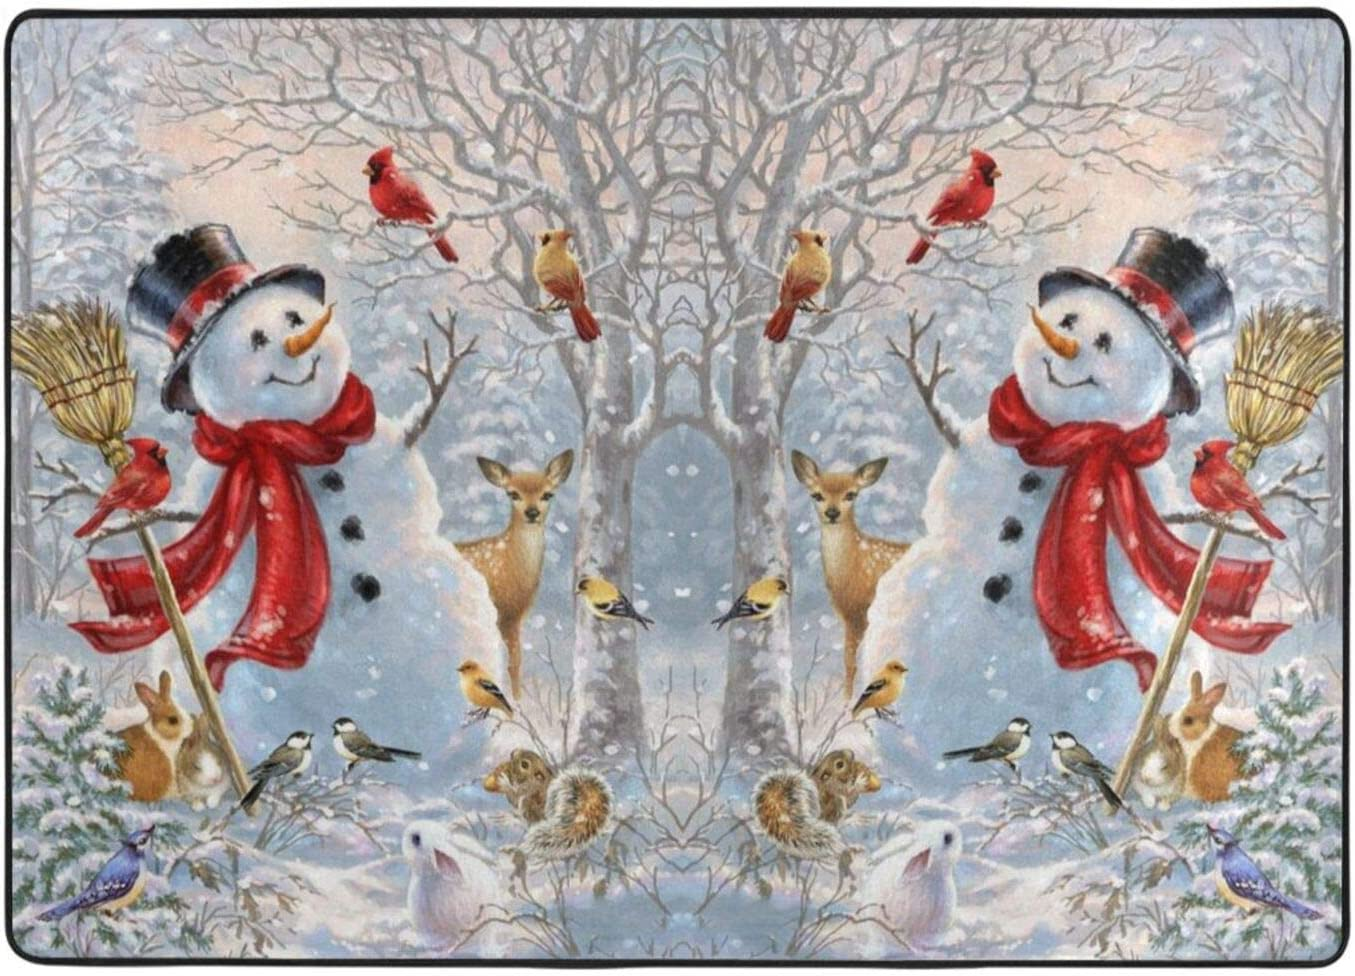 Snowman Christmas Fluffy Living Room Ranking TOP17 Carpets 60 Carpet Inch X New mail order 84